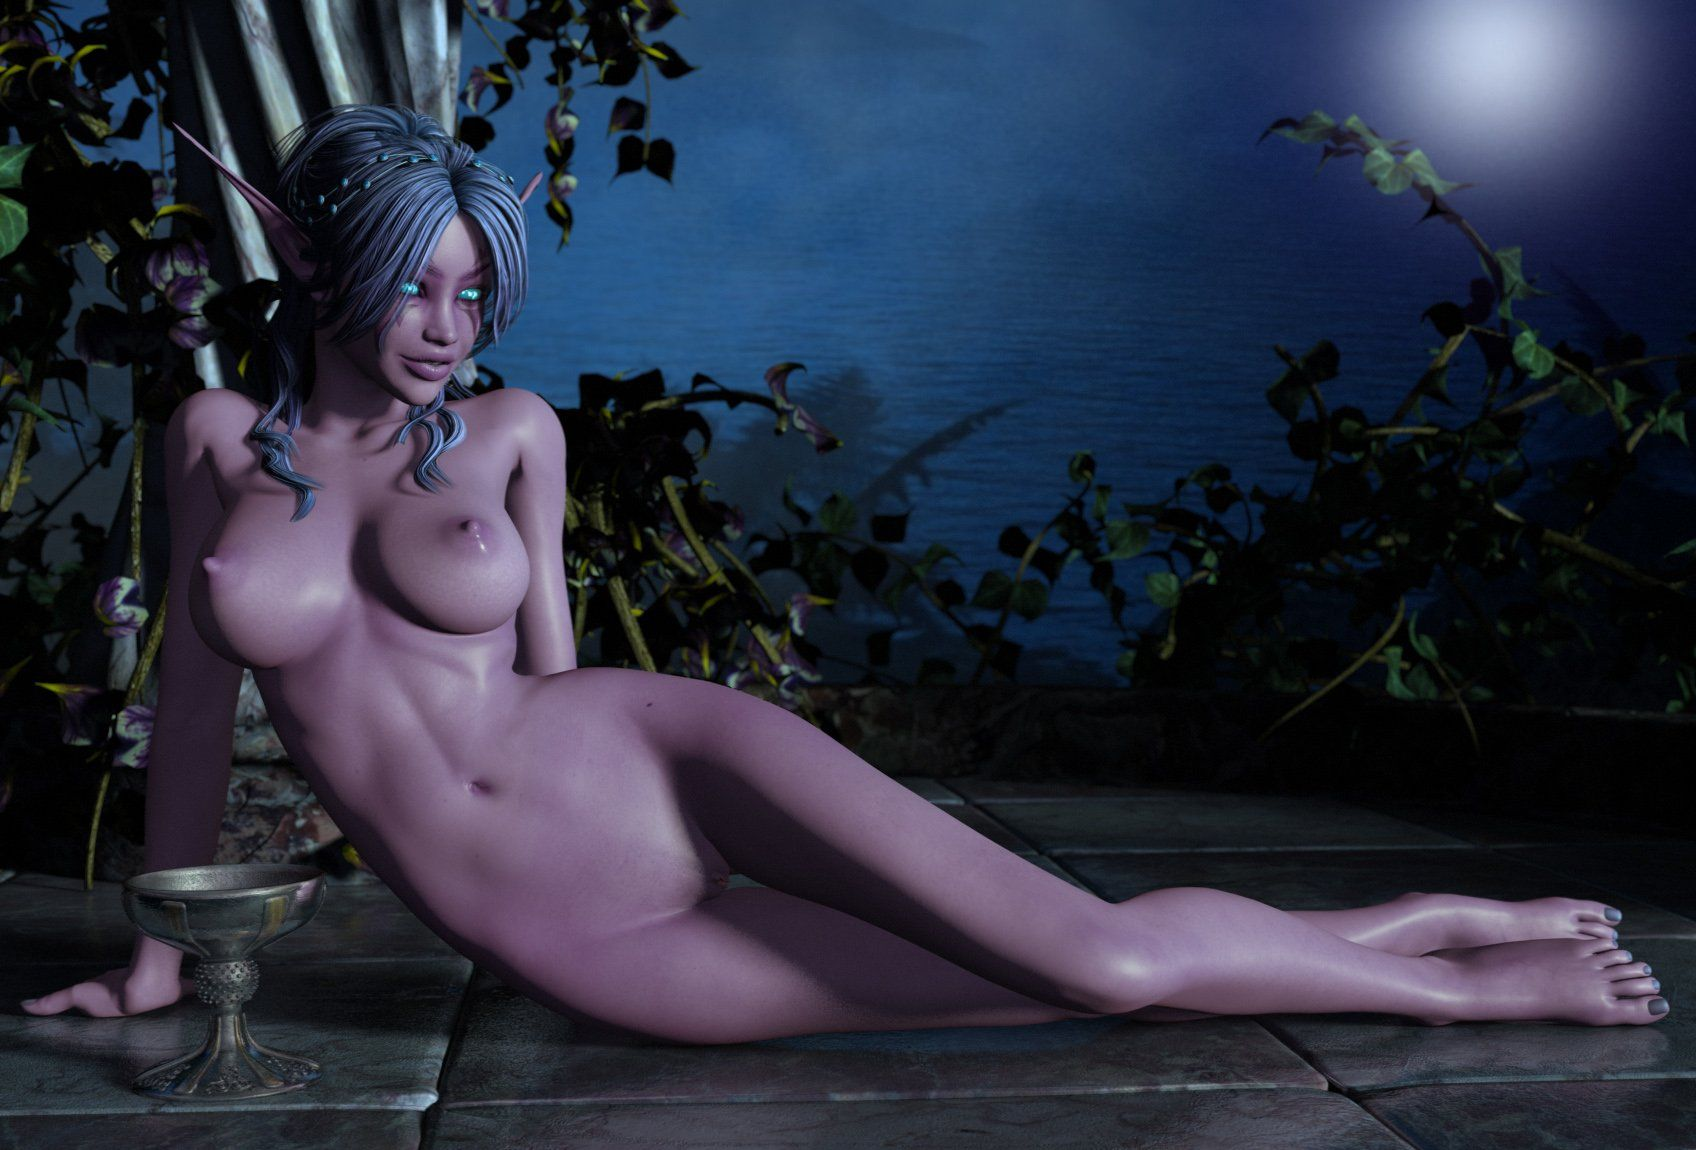 3D Wow Porn butt elf female image night nude wow - new porn. comments: 2